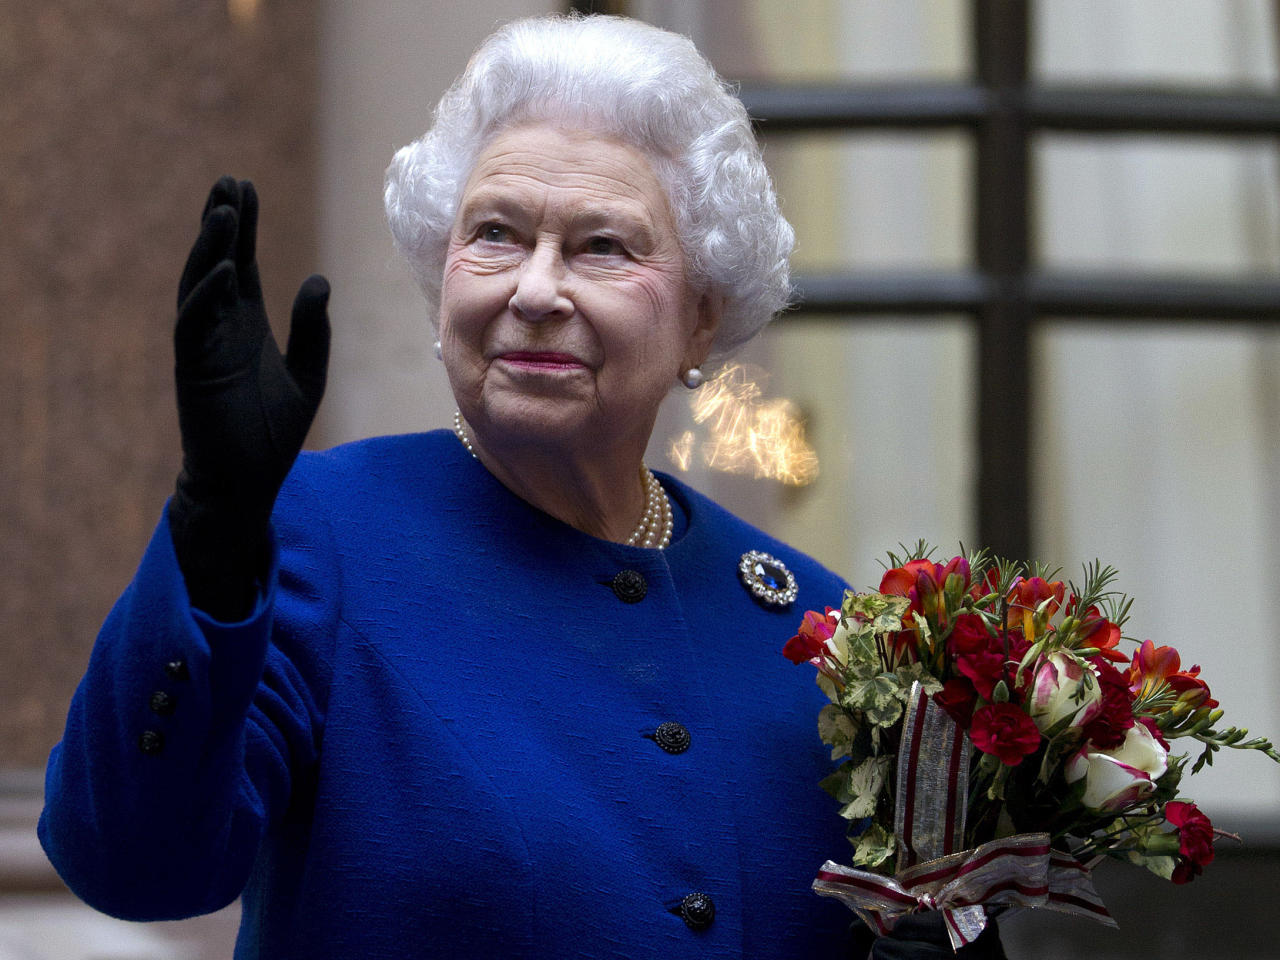 FILE - In this Tuesday, Dec. 18, 2012 file photo, Britain's Queen Elizabeth II looks up and waves to members of staff of The Foreign and Commonwealth Office as she ends an official visit which is part of her Jubilee celebrations in London. Queen Elizabeth has been taken to the King Edward VII hospital in central London suffering from gastroenteritis, Sunday, March 3, 2013. A palace spokesman said she was expected to stay in hospital for two days and all engagements for this week will be either postponed or cancelled.(AP Photo/Alastair Grant Pool, file)